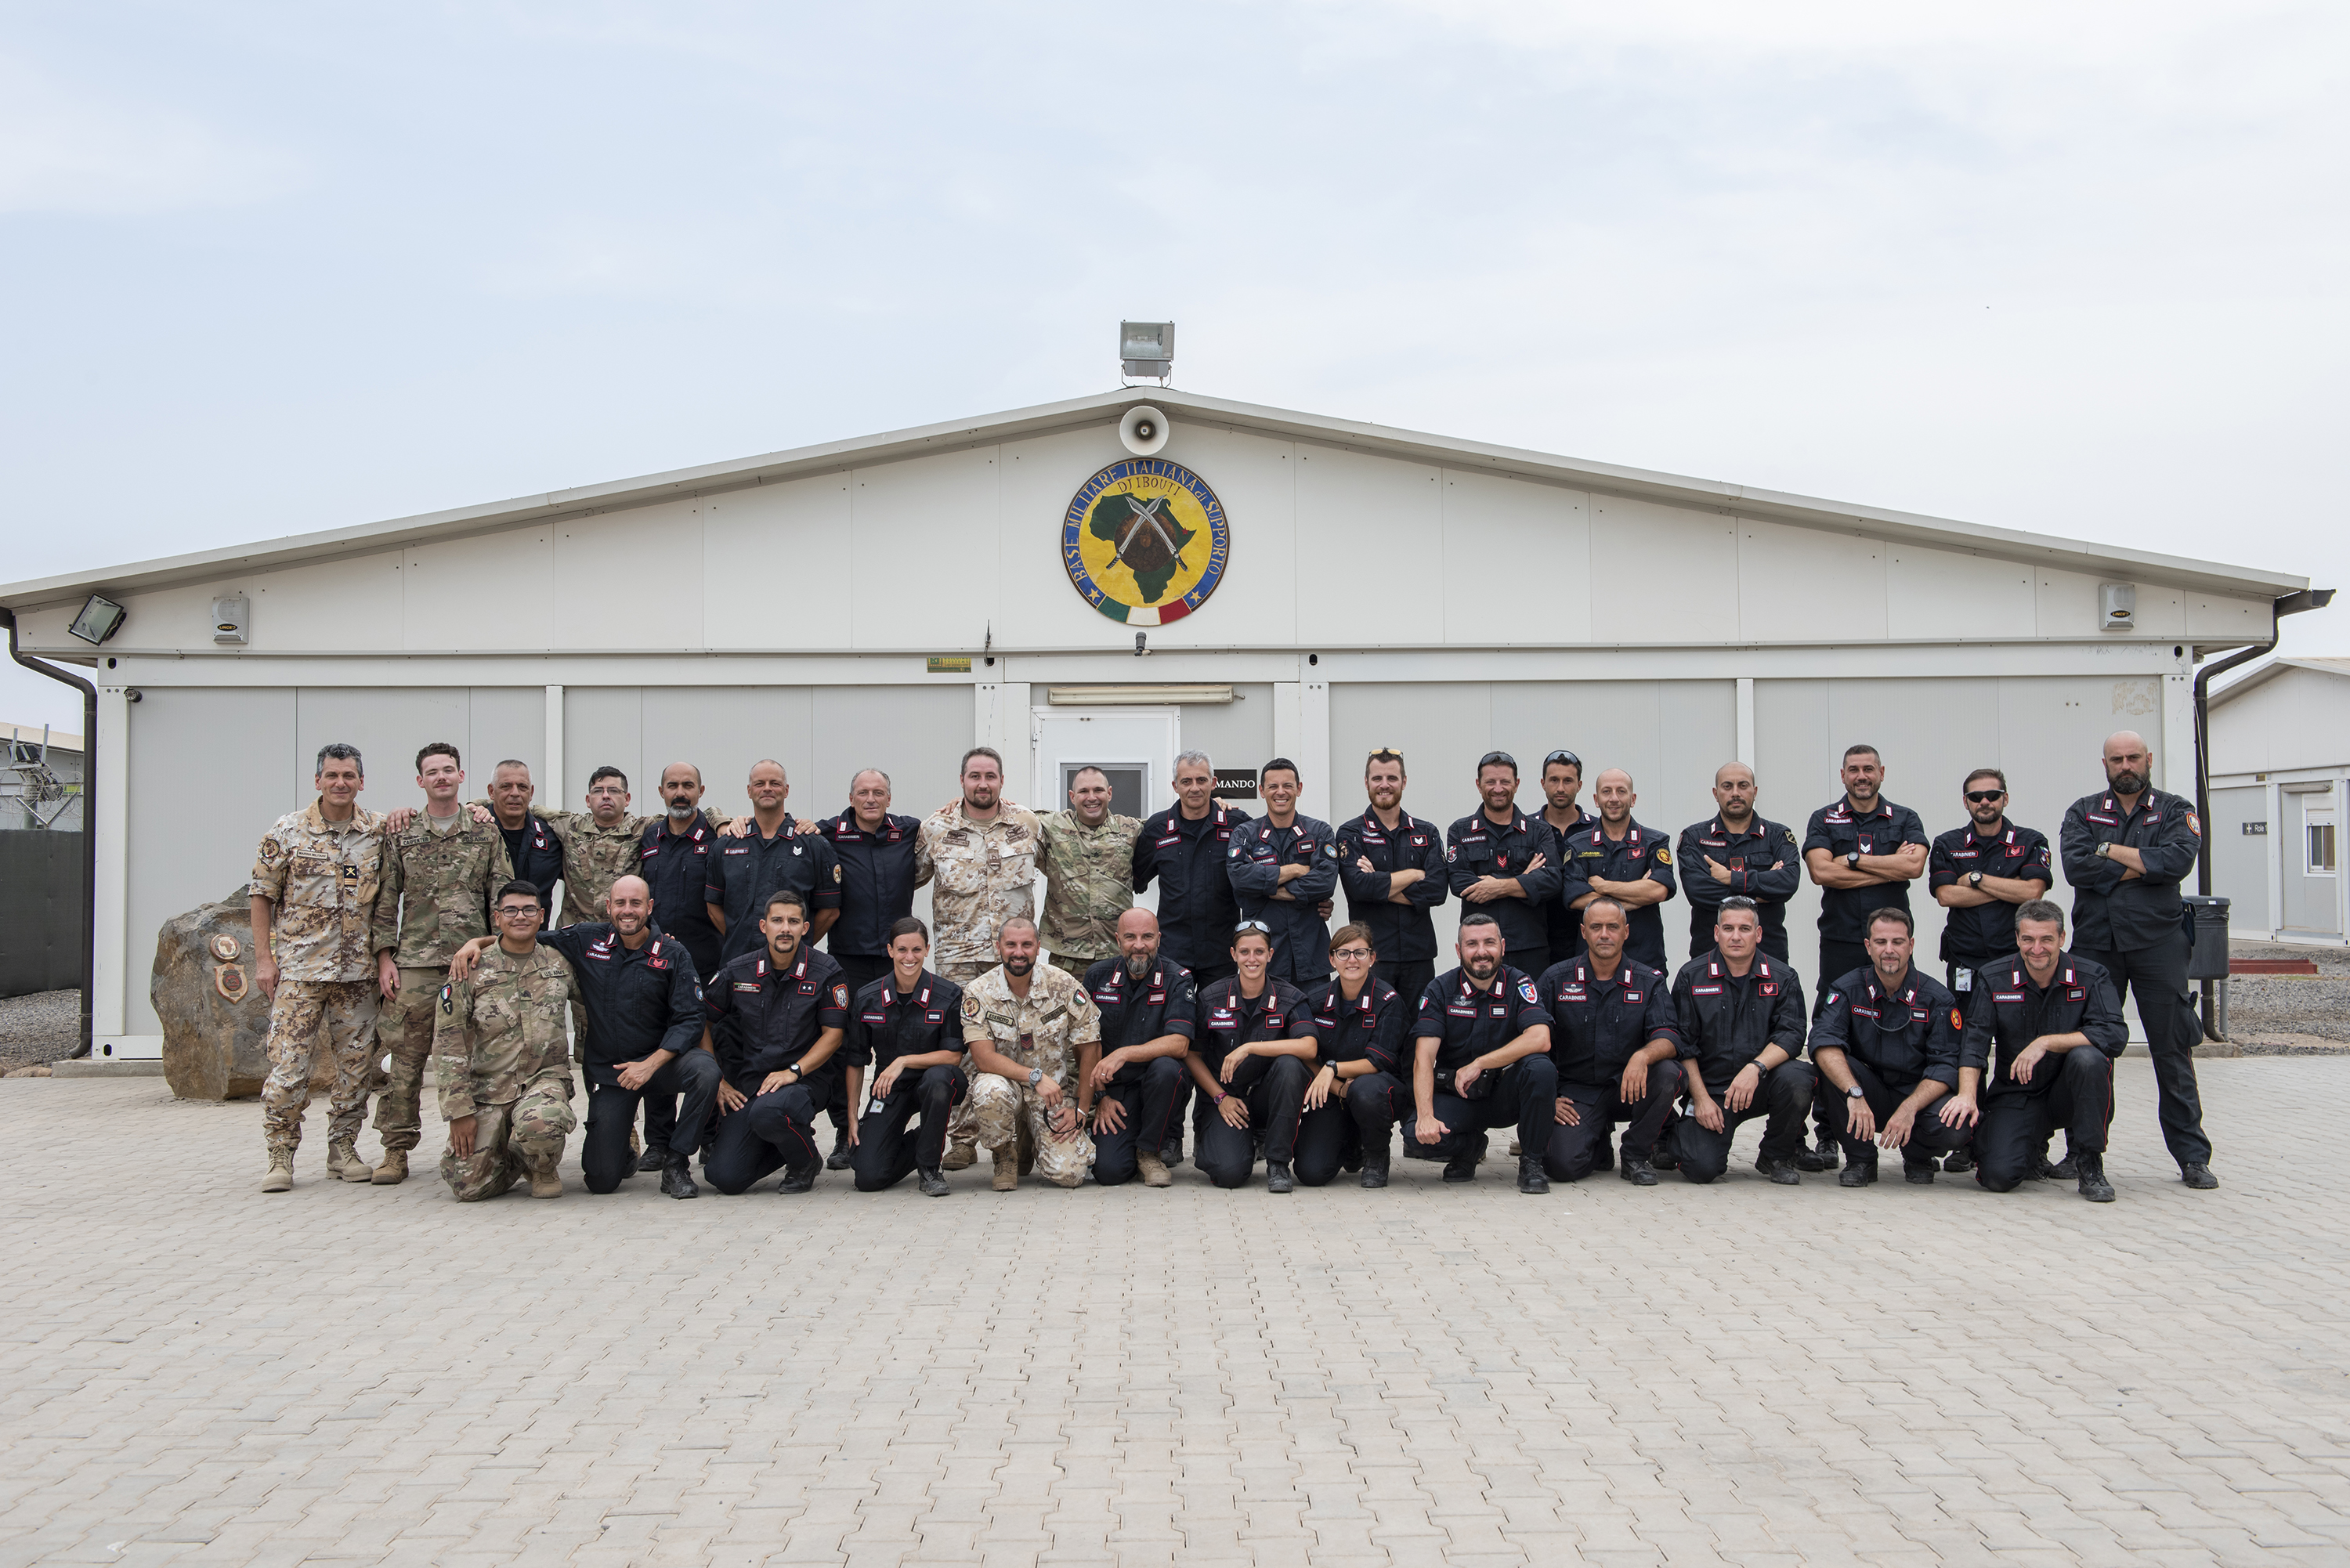 U.S. Soldiers with the 404th Civil Affairs Battalion Functional Specialty Team and the 3rd battalion, 144th Infantry Regiment, Texas Army National Guard pose for a class photo with Italian soldiers from the 1st Paratroopers Carabinieri Regiment, Tuscania, on Base Militar Italiano de Supporte, Djibouti, April 28, 2018. The soldiers taught a combat lifesaver course to 33 students over a five-day period. (U.S. Air National Guard photo by Master Sgt. Sarah Mattison)